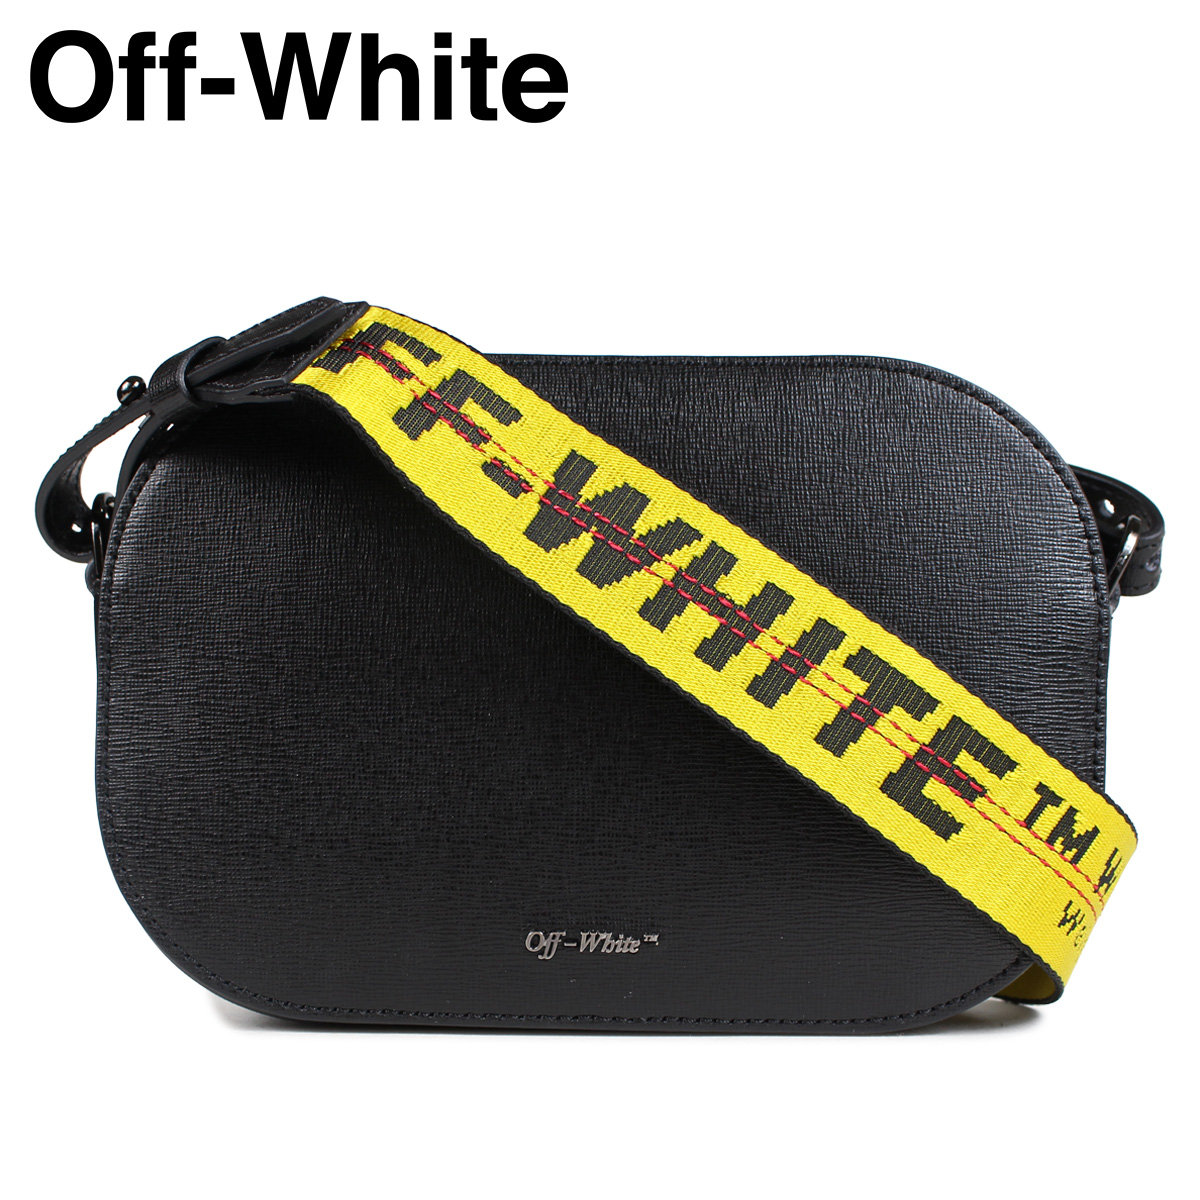 8451ca6791070 [brand Off-white which the powerful design which got inspiration for  modernism architecture of the 20th century is characterized by]